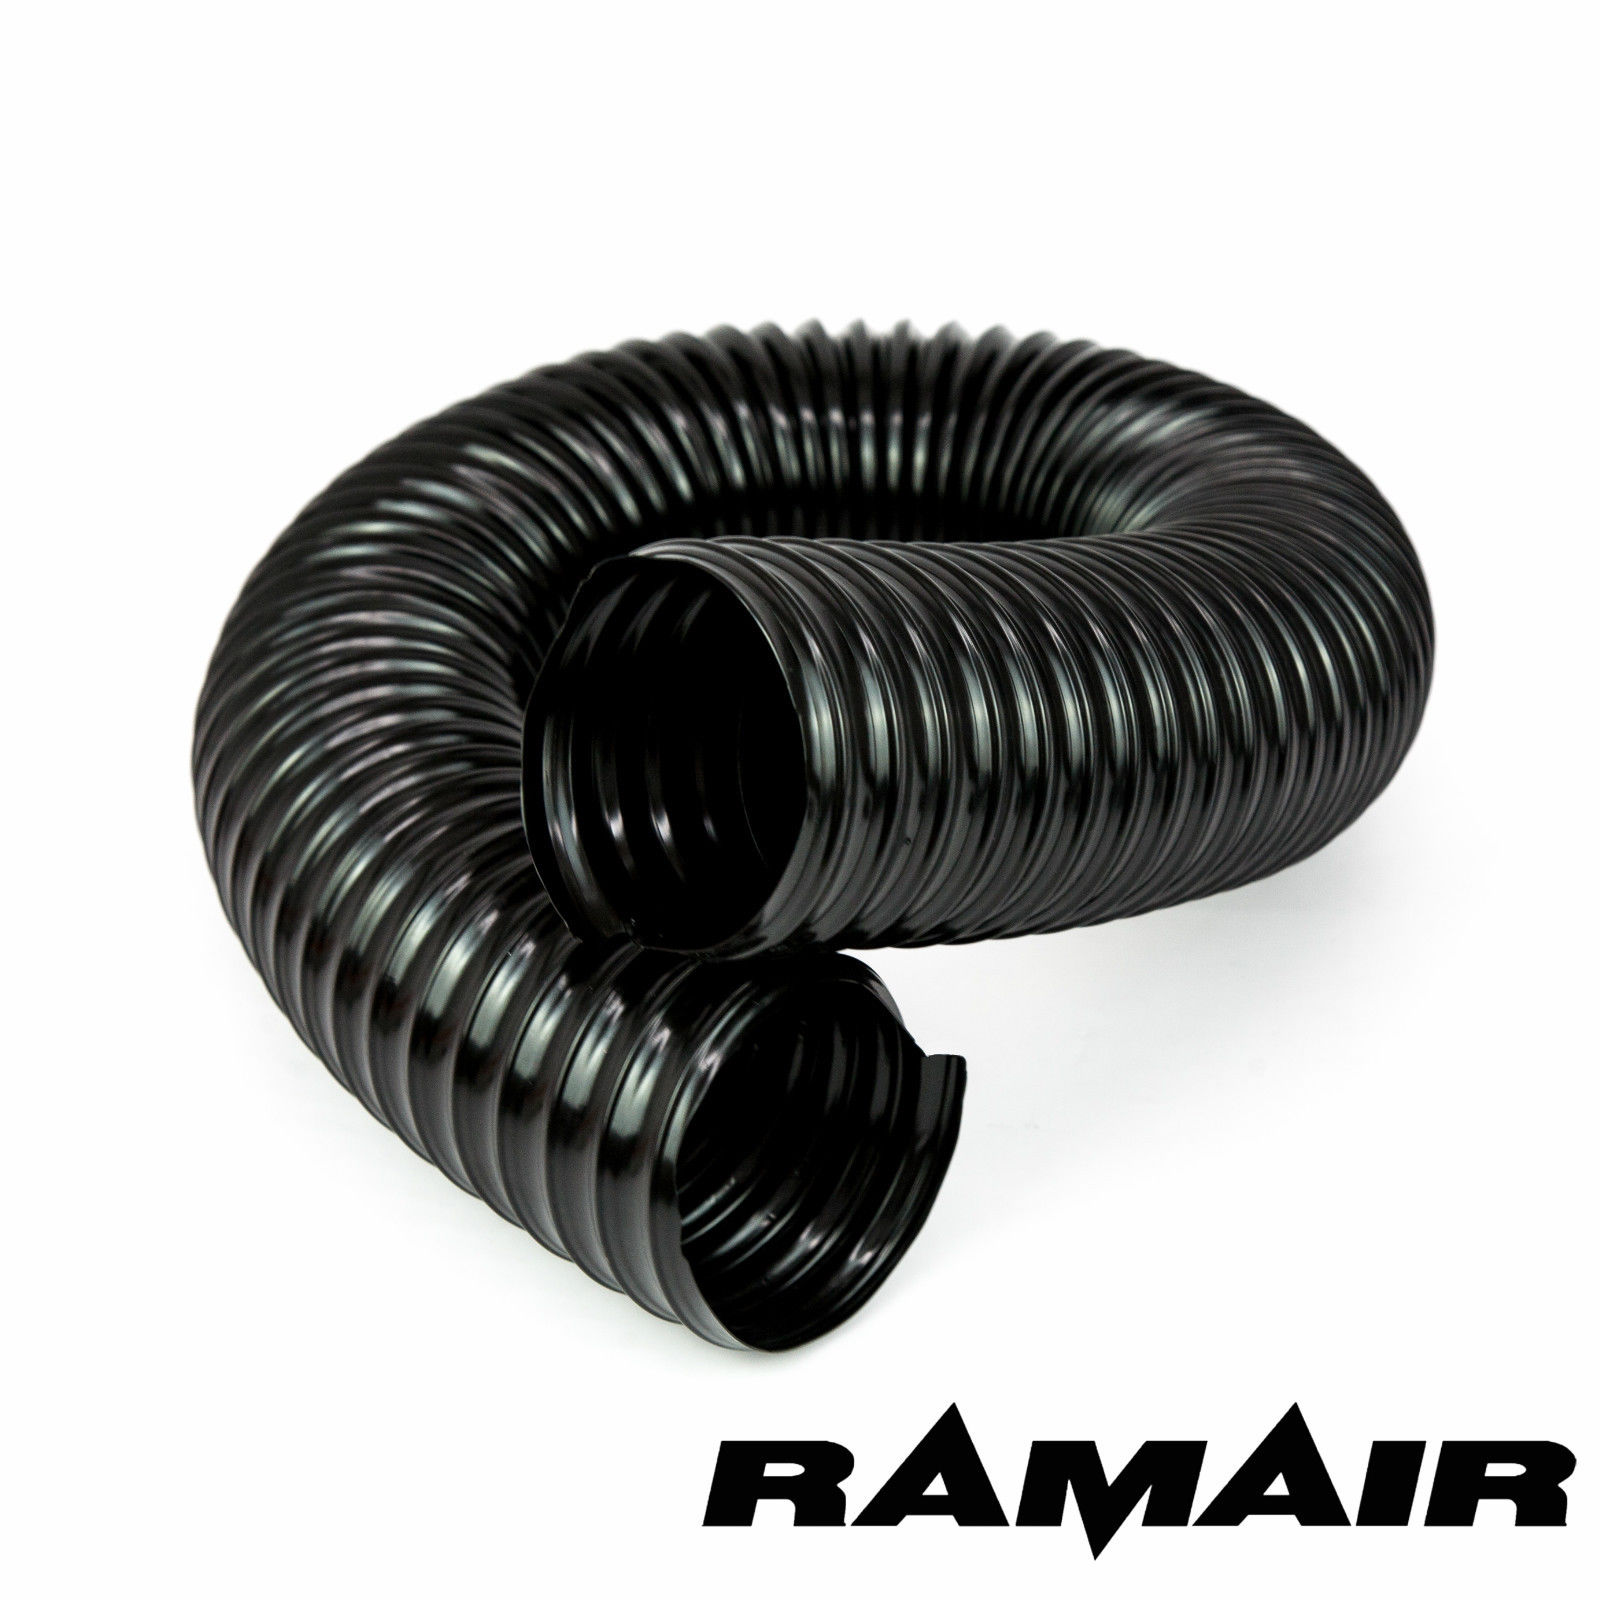 Ramair Pvc Black Flexible Cold Air Ducting Wire Wound